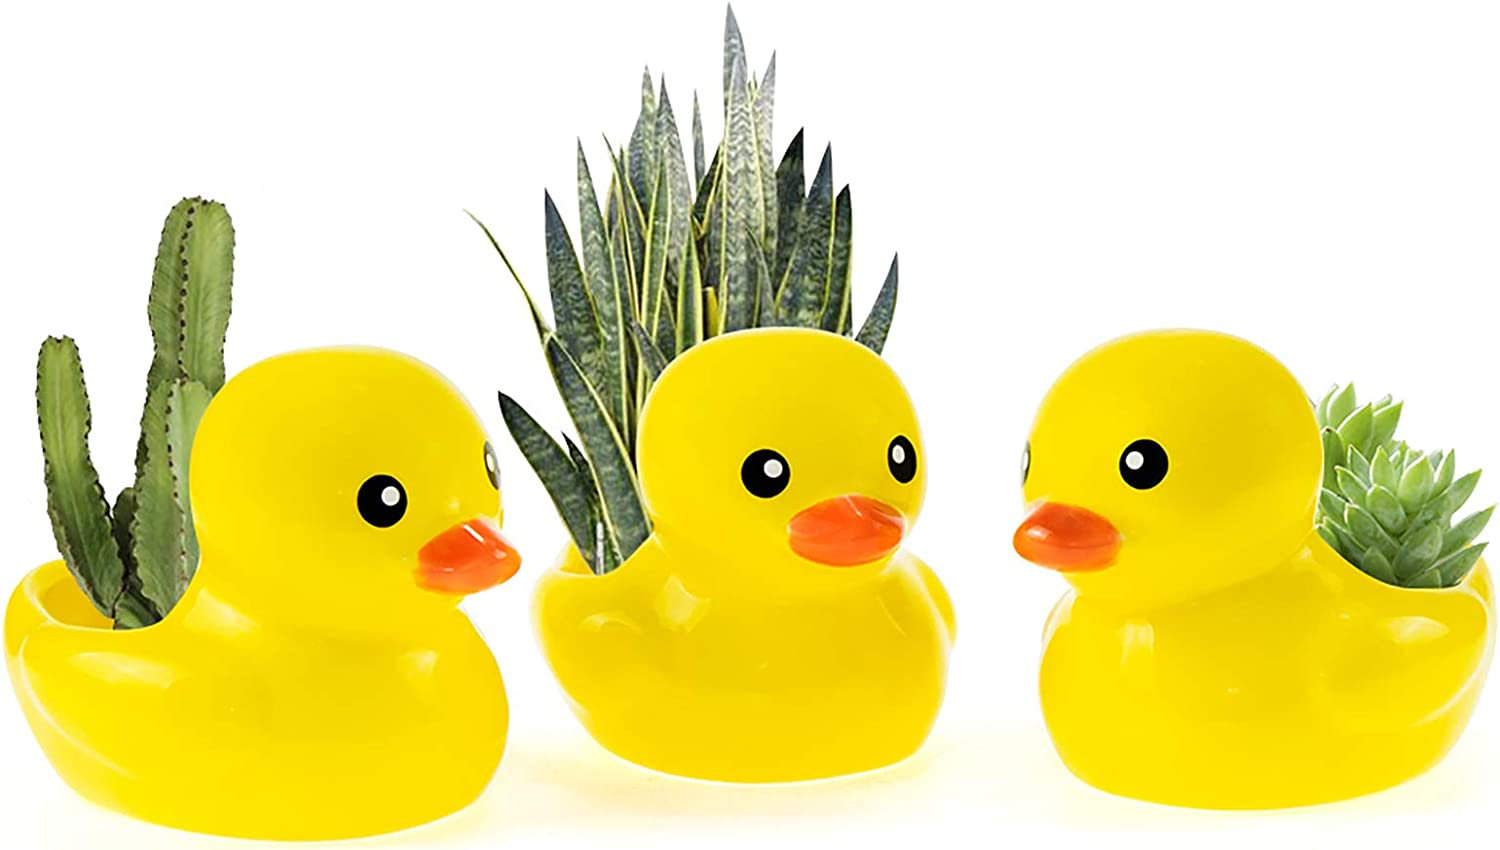 FairyLavie 4'' Yellow Duck Ceramic Succulent Pots Flower Plant Pots Cute Mini Pots for Plants, Perfect for Home Office Decor and Ideal Gift for Family Friends Colleague, Set of 3 - PLANTS NOT INCLUDED